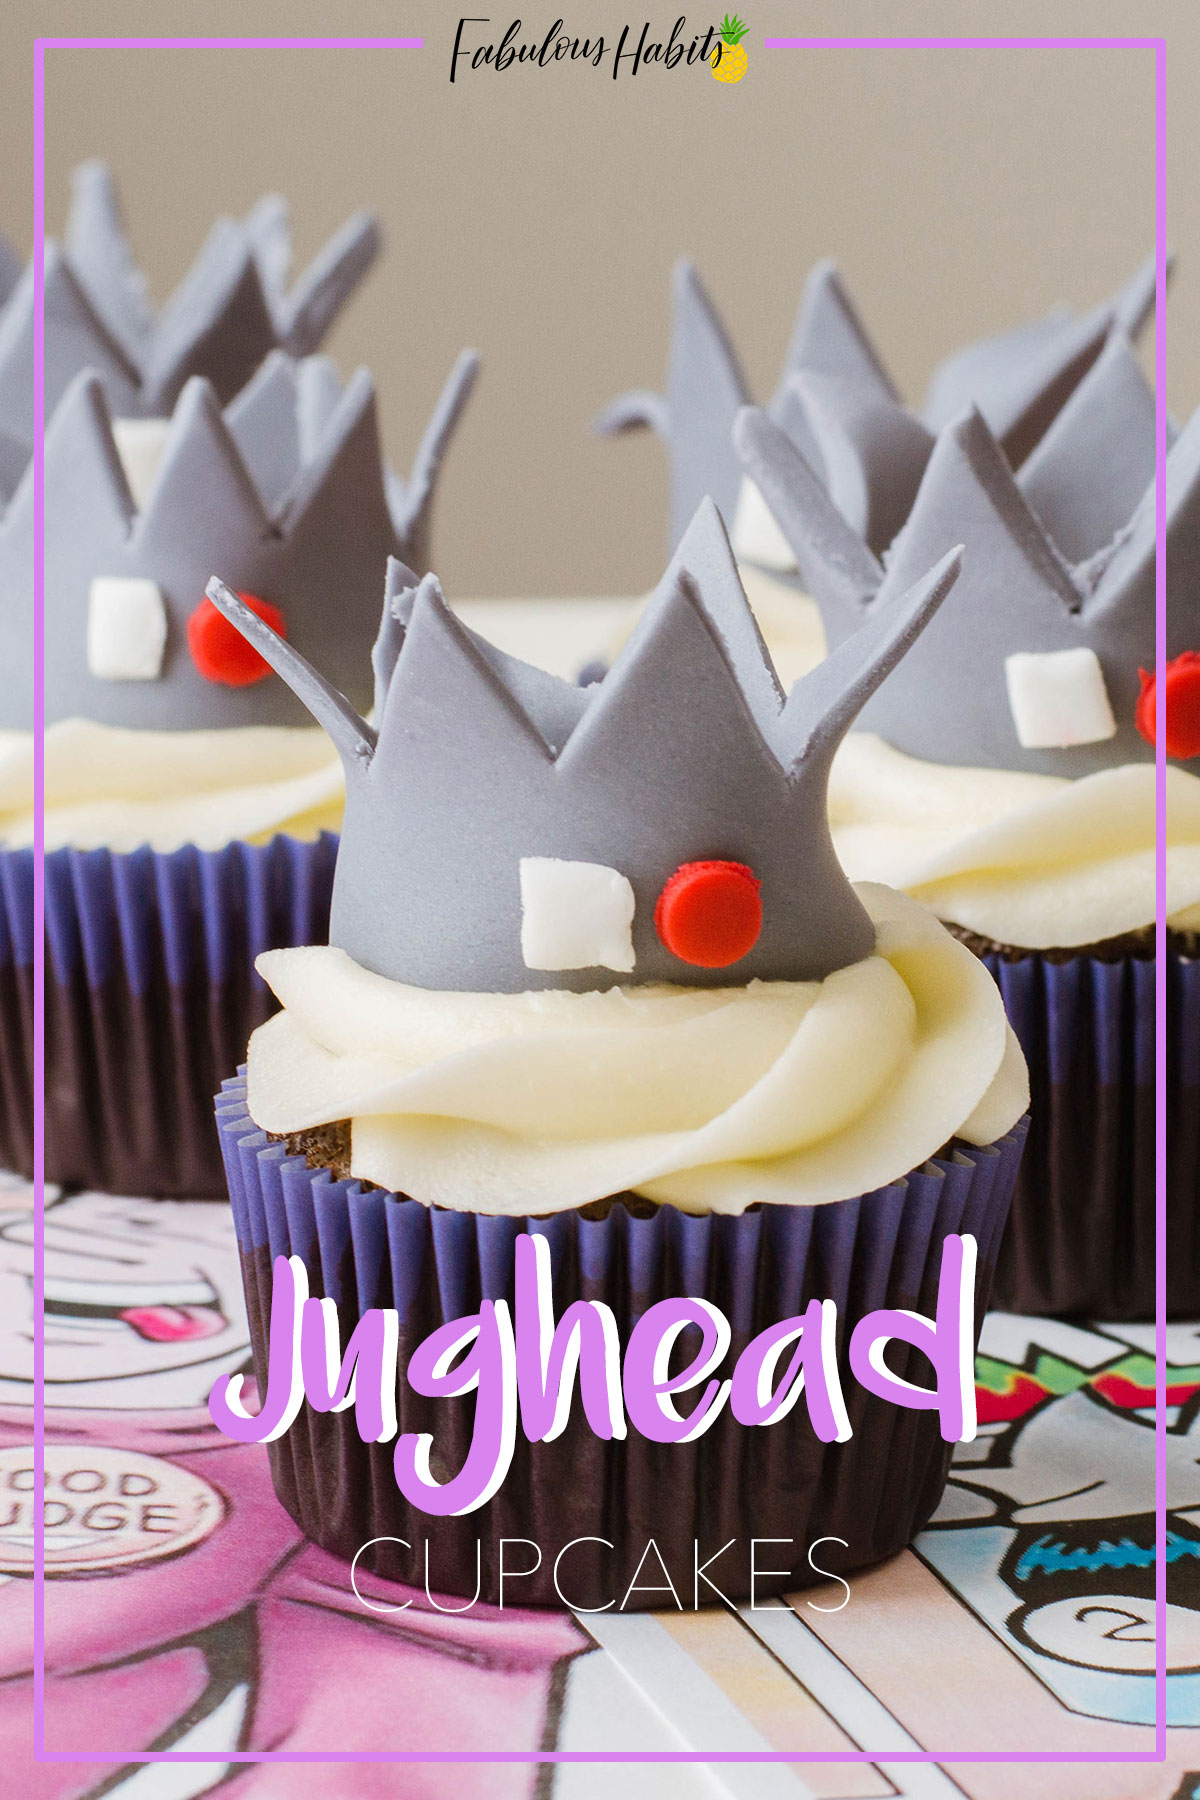 Easy step by step instructions on creating a Jughead crown fondant topper for the cutest Riverdale-Inspired Cupcakes! #JugheadCupcakes